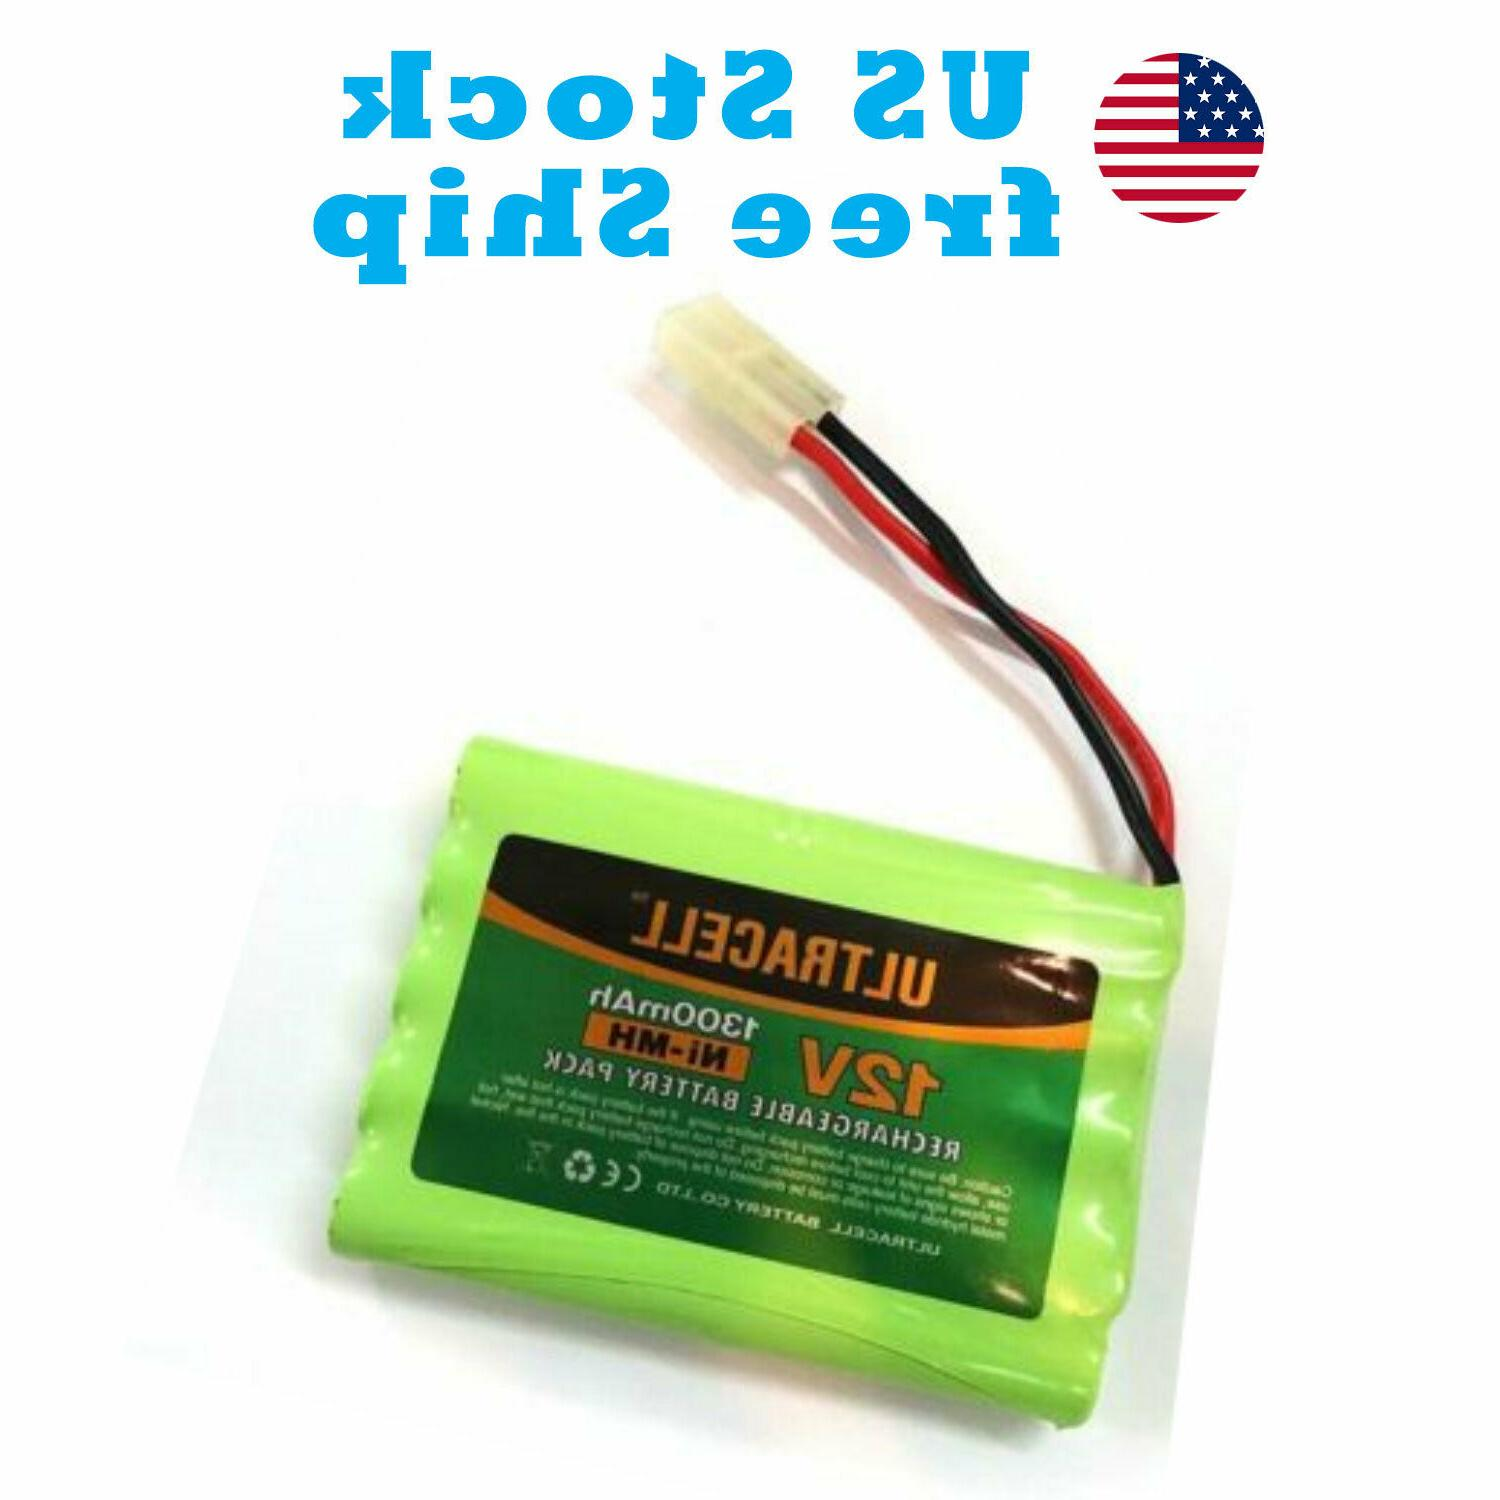 12v 1300mah ni mh rechargeable battery pack